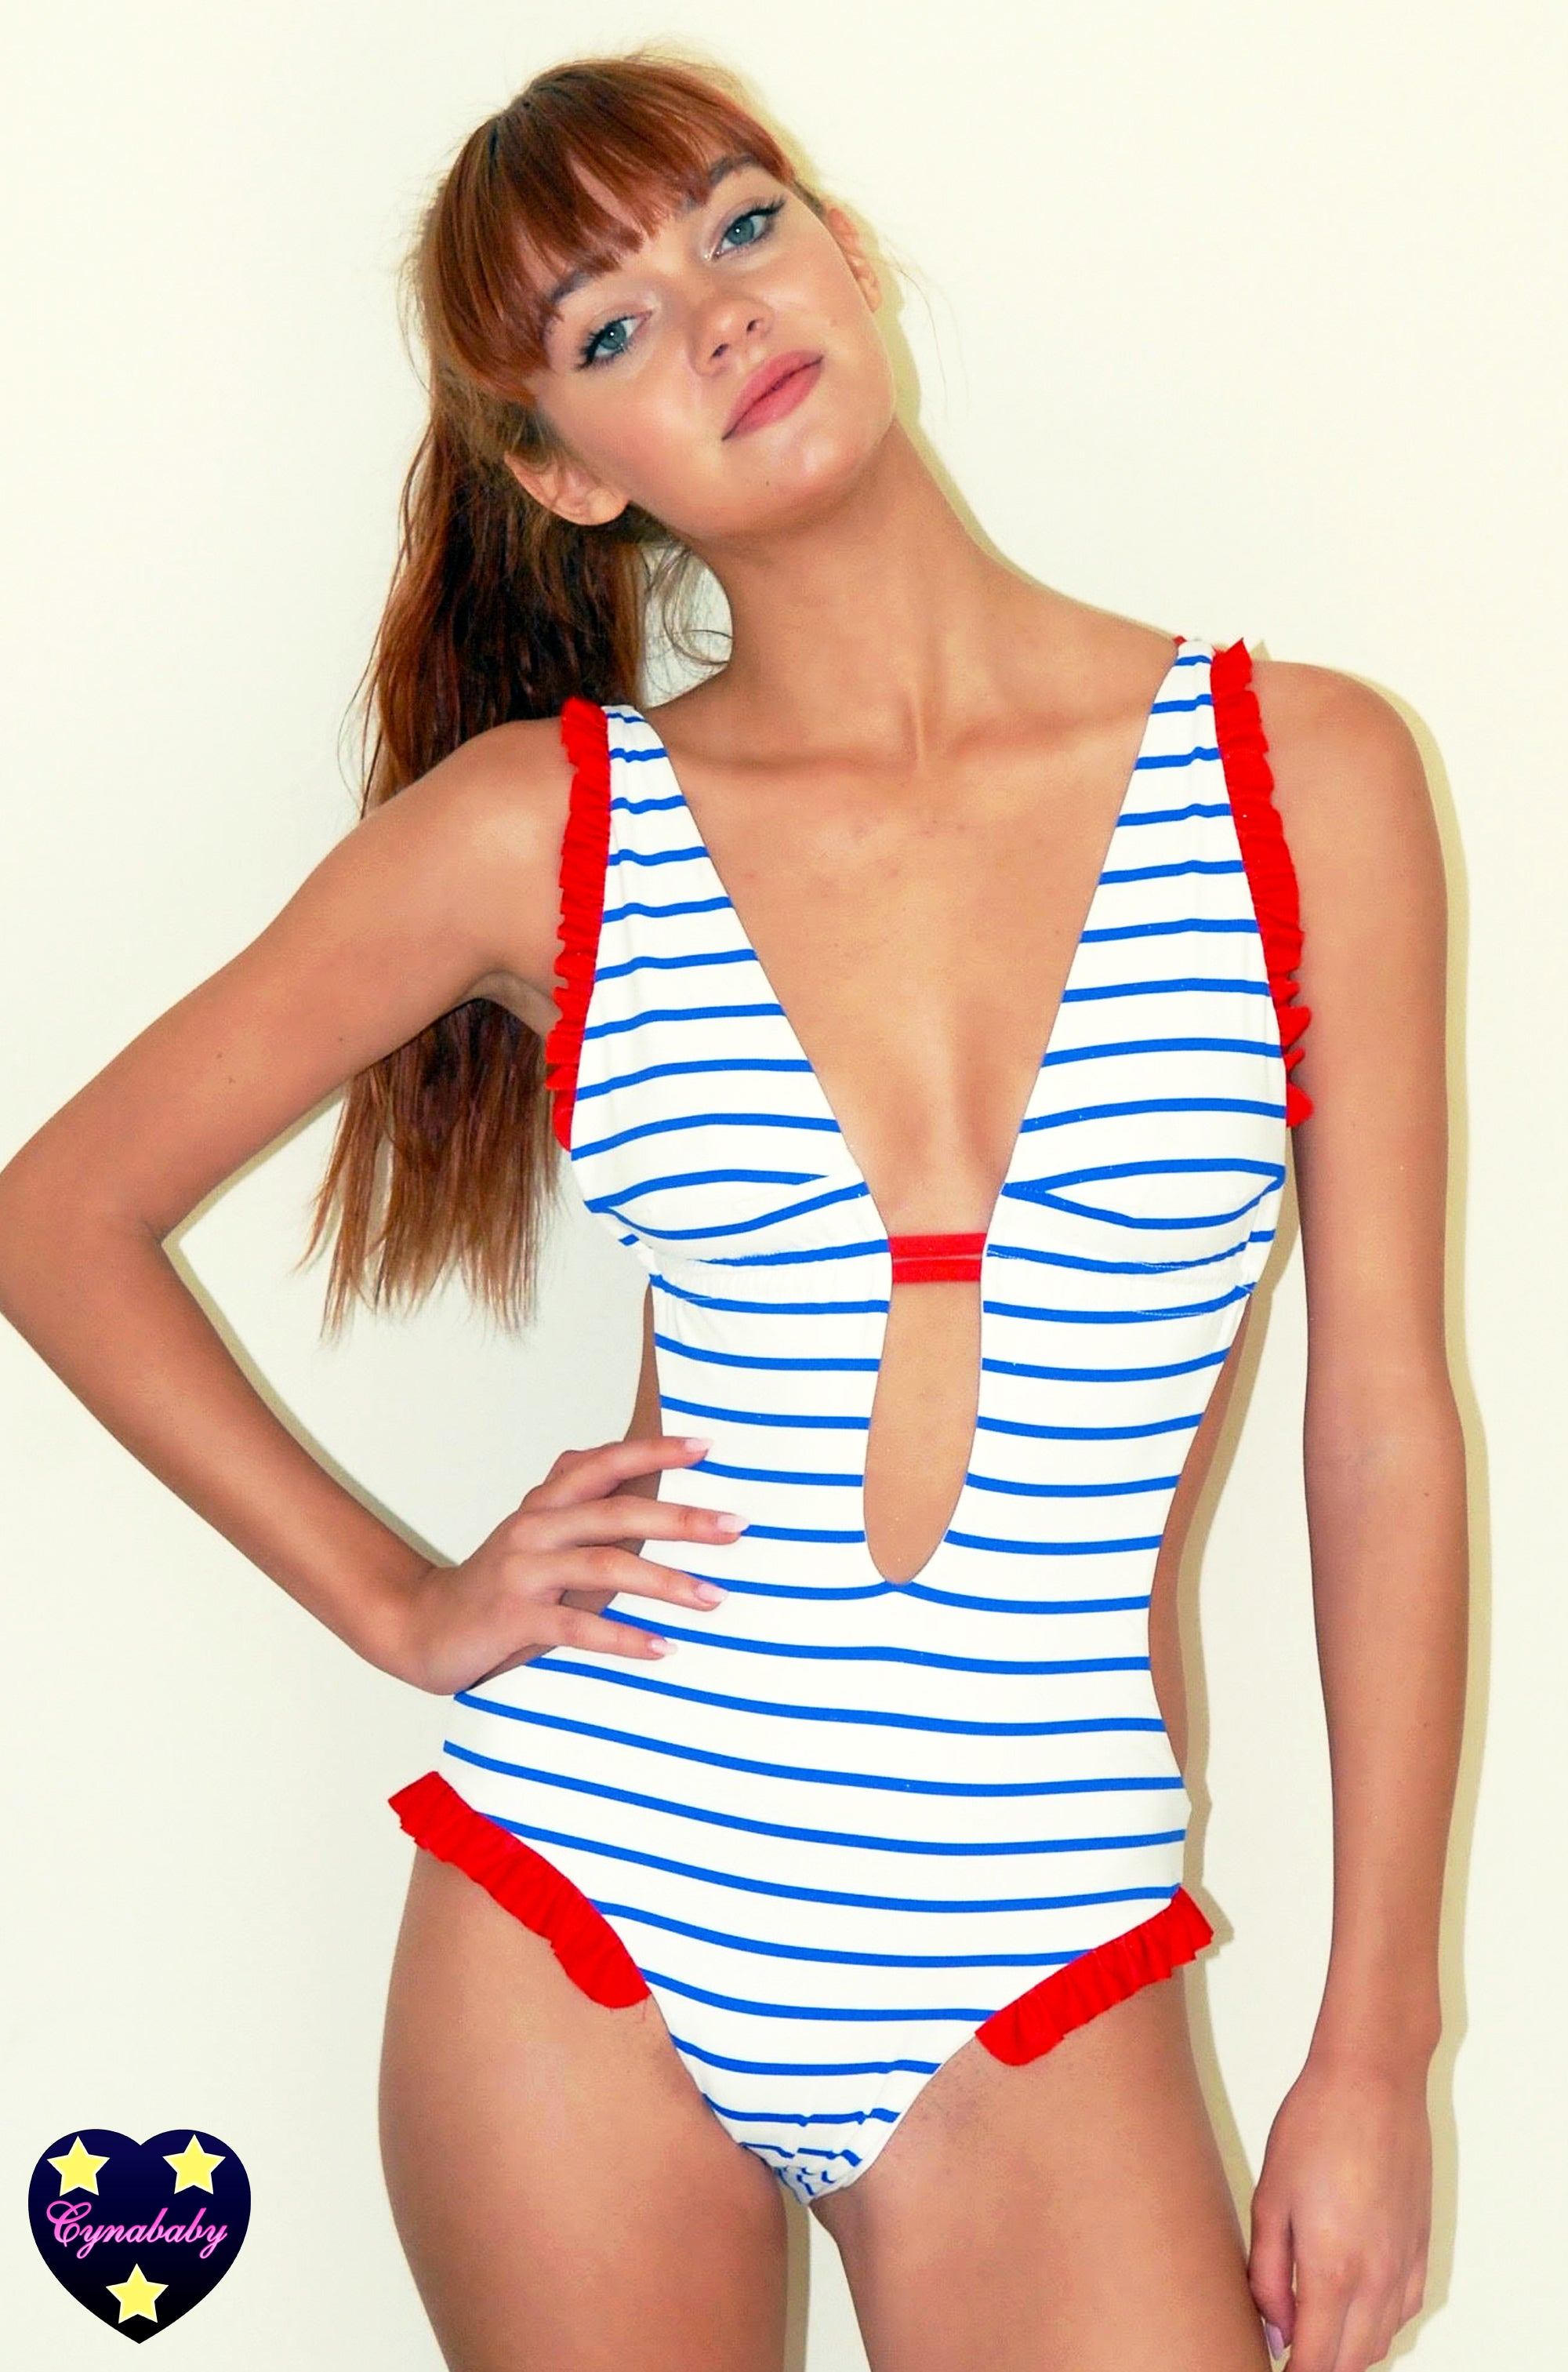 Custom Monokini One-Piece - Blue Nautical Stripe Red Frill Swimsuit